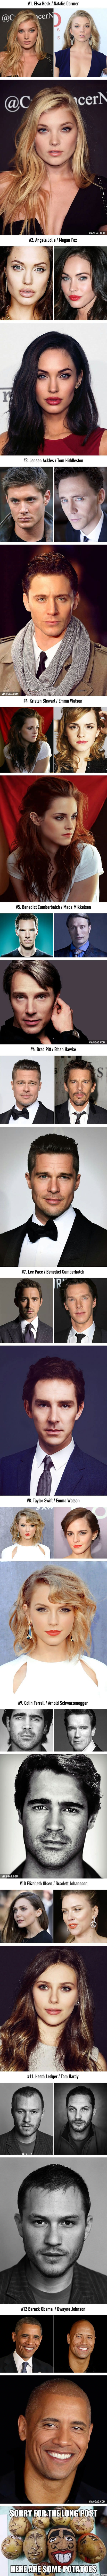 12 Celebrity Face Mashups That Are Simple Perfect.....they also r some celebs that look kinda alike